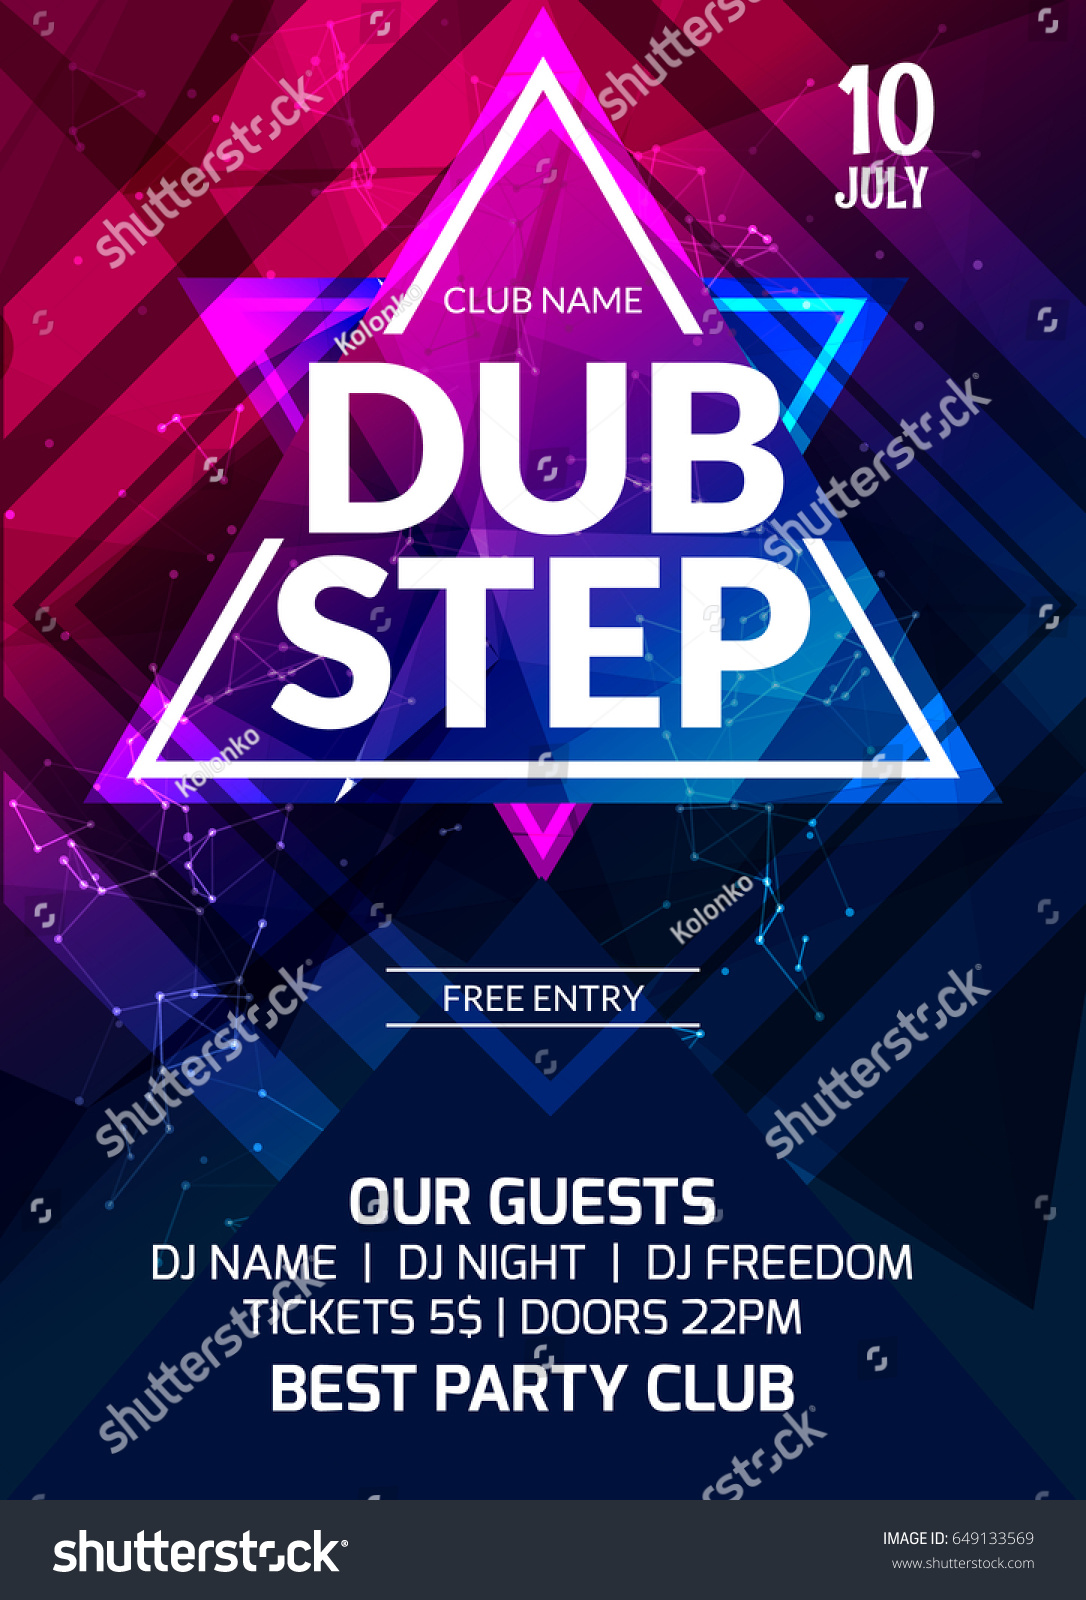 Dubstep Party Flyer Poster Futuristic Club Stock Vector 649133569 ...